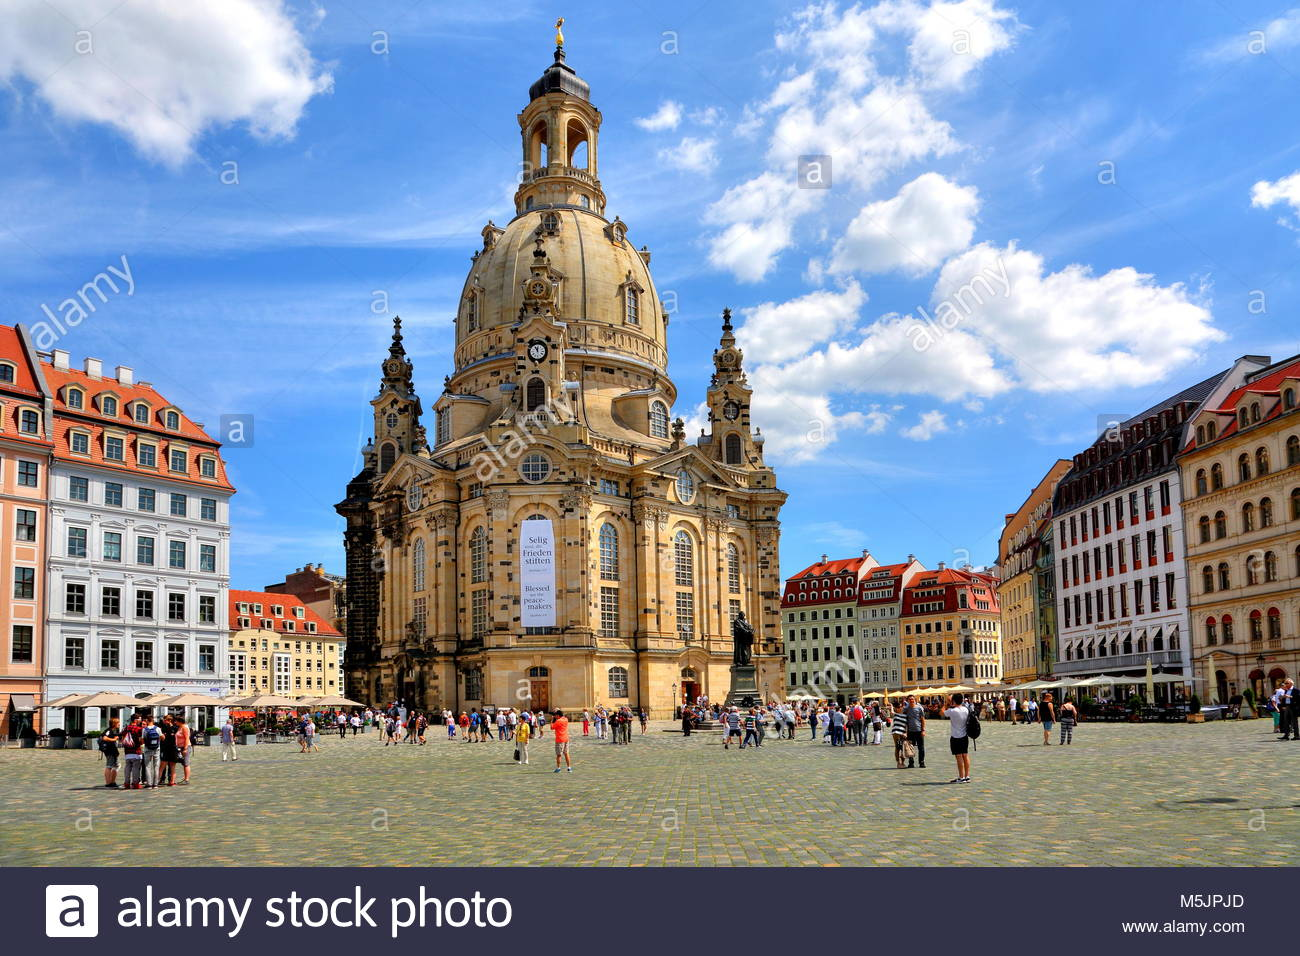 Frauenkirche on the Neumarkt,Old Town,Dresden,Saxony,Germany - Stock Image